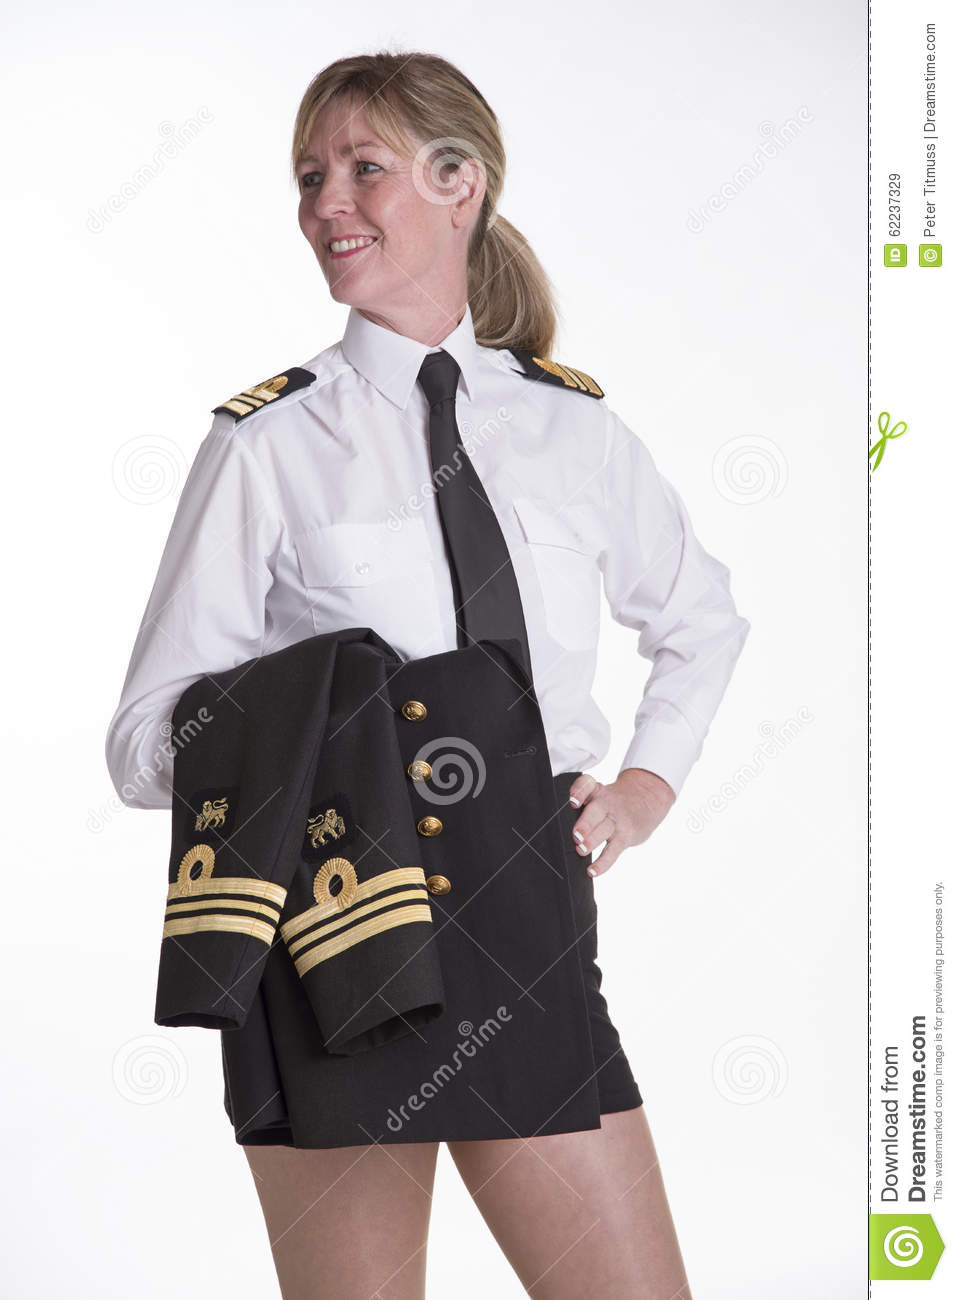 Female Naval Officer Uniform 4